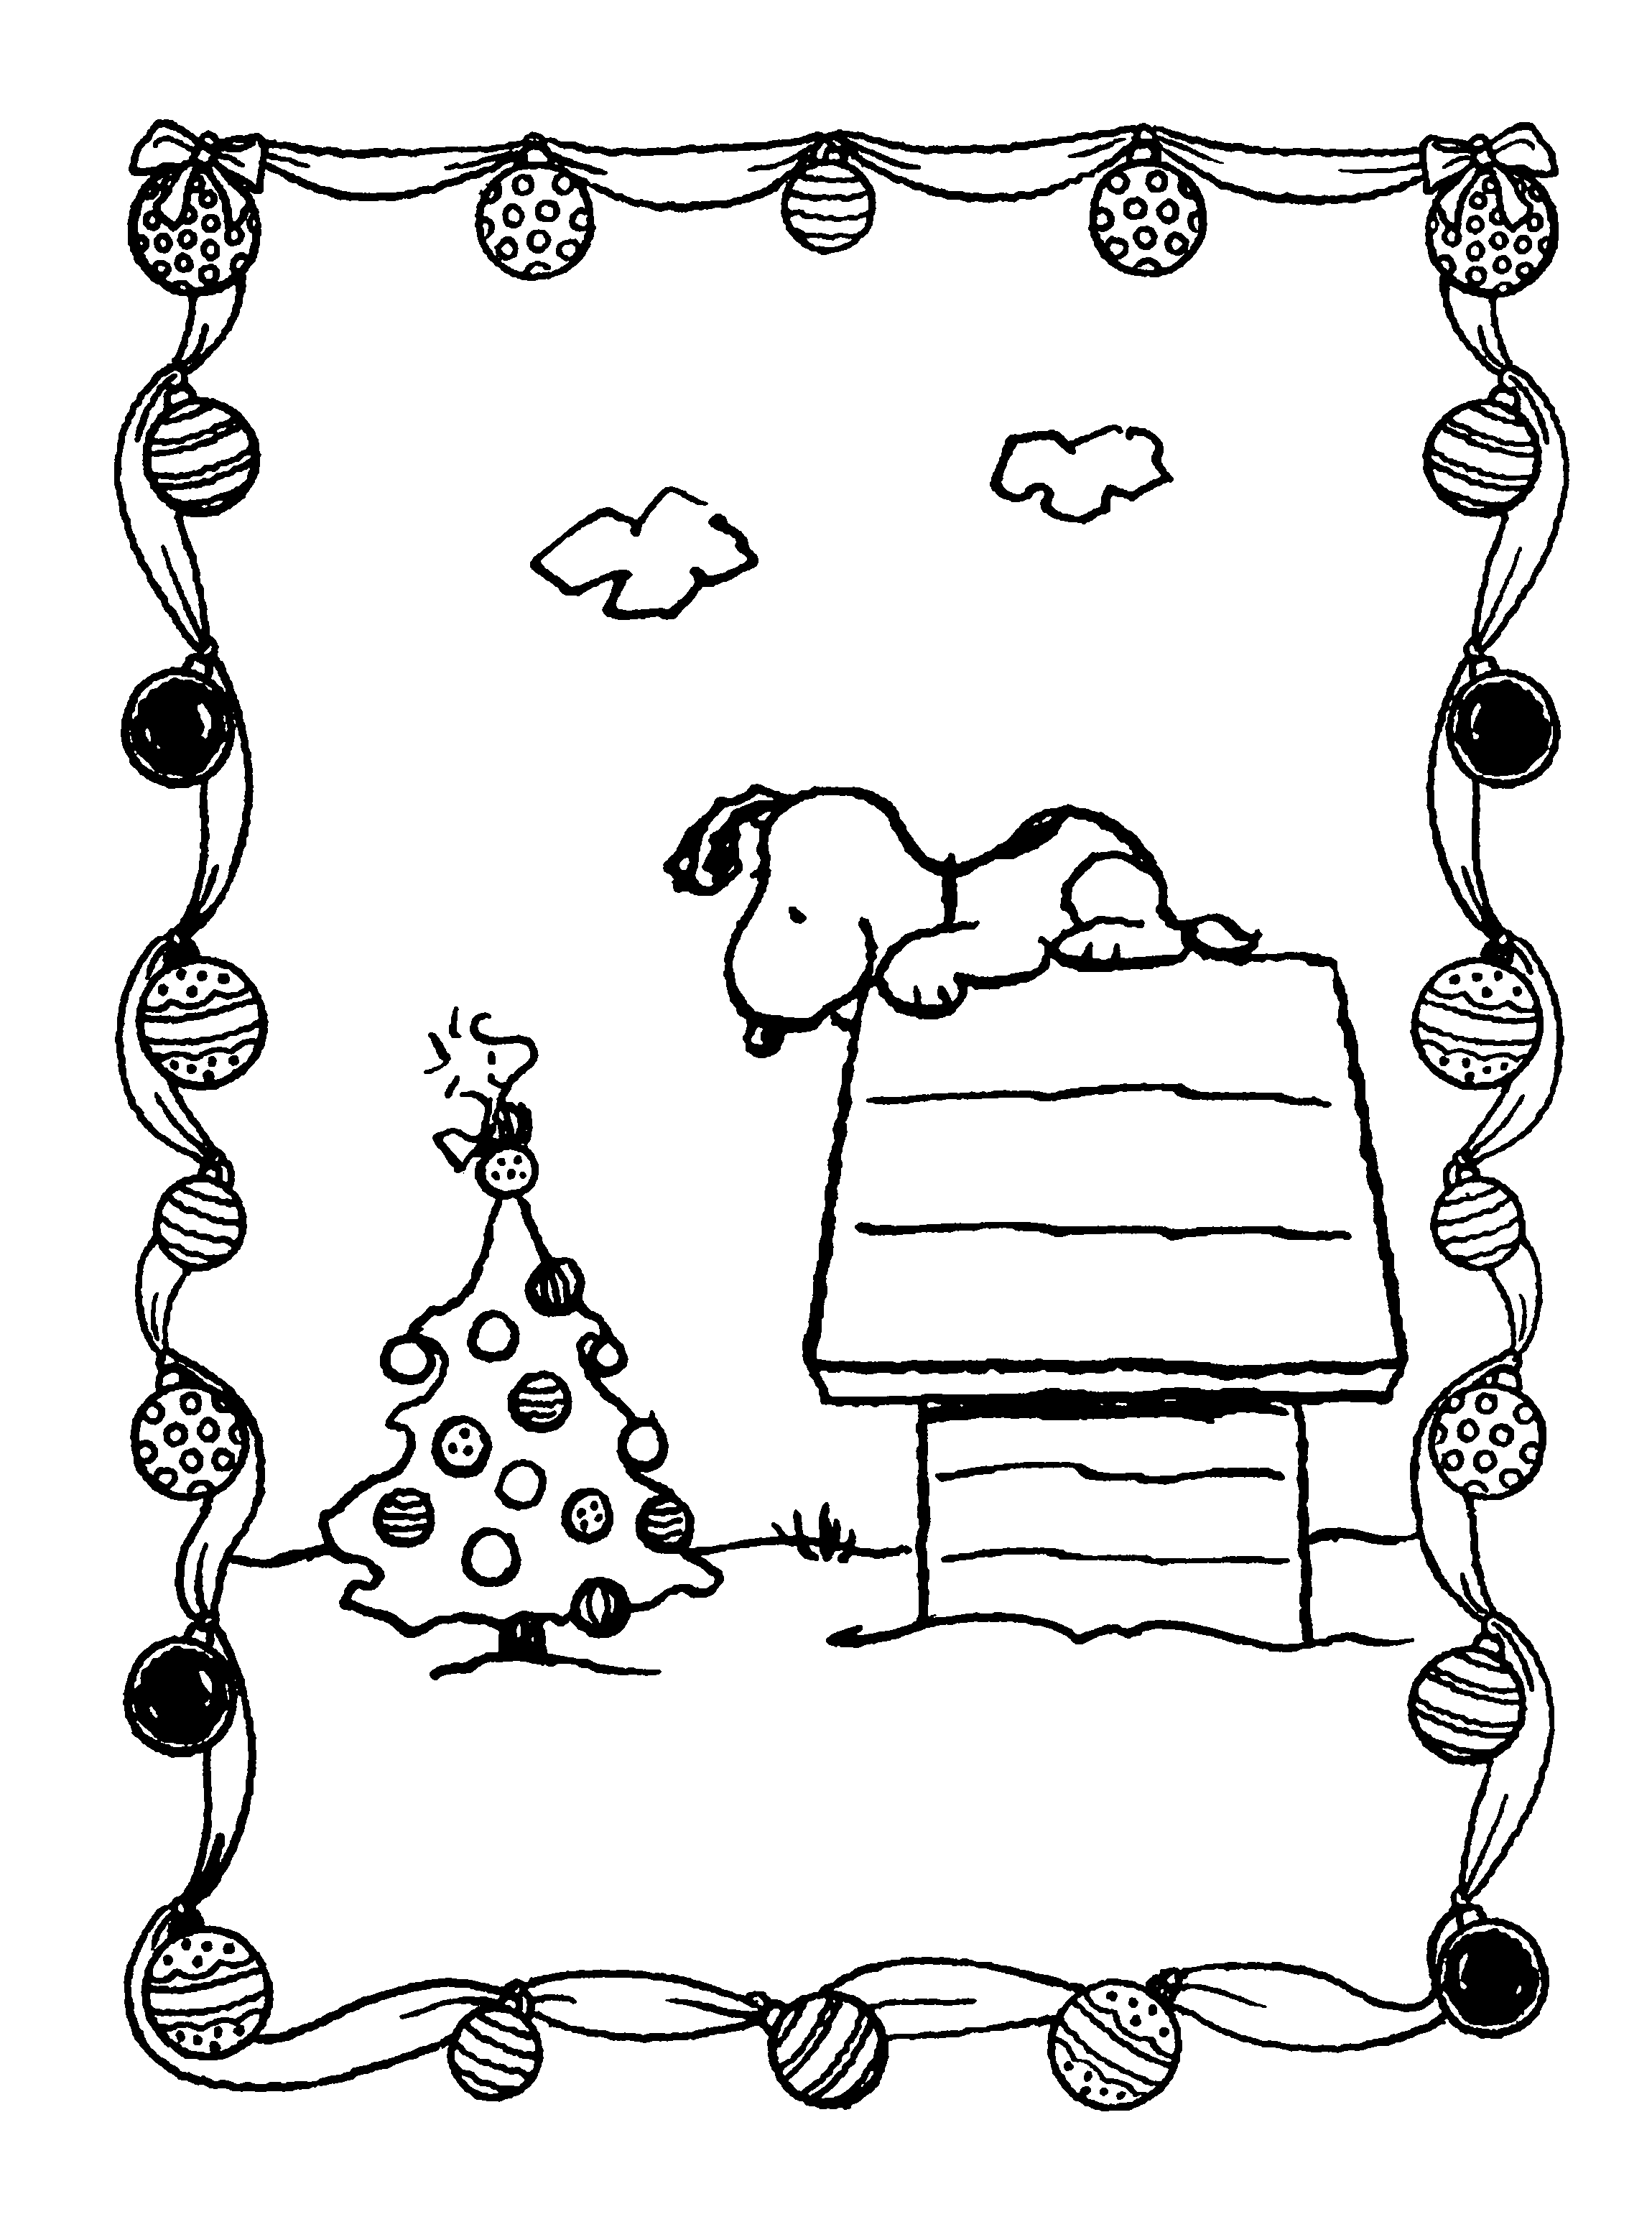 free printable charlie brown christmas coloring pages for kids best coloring pages for kids